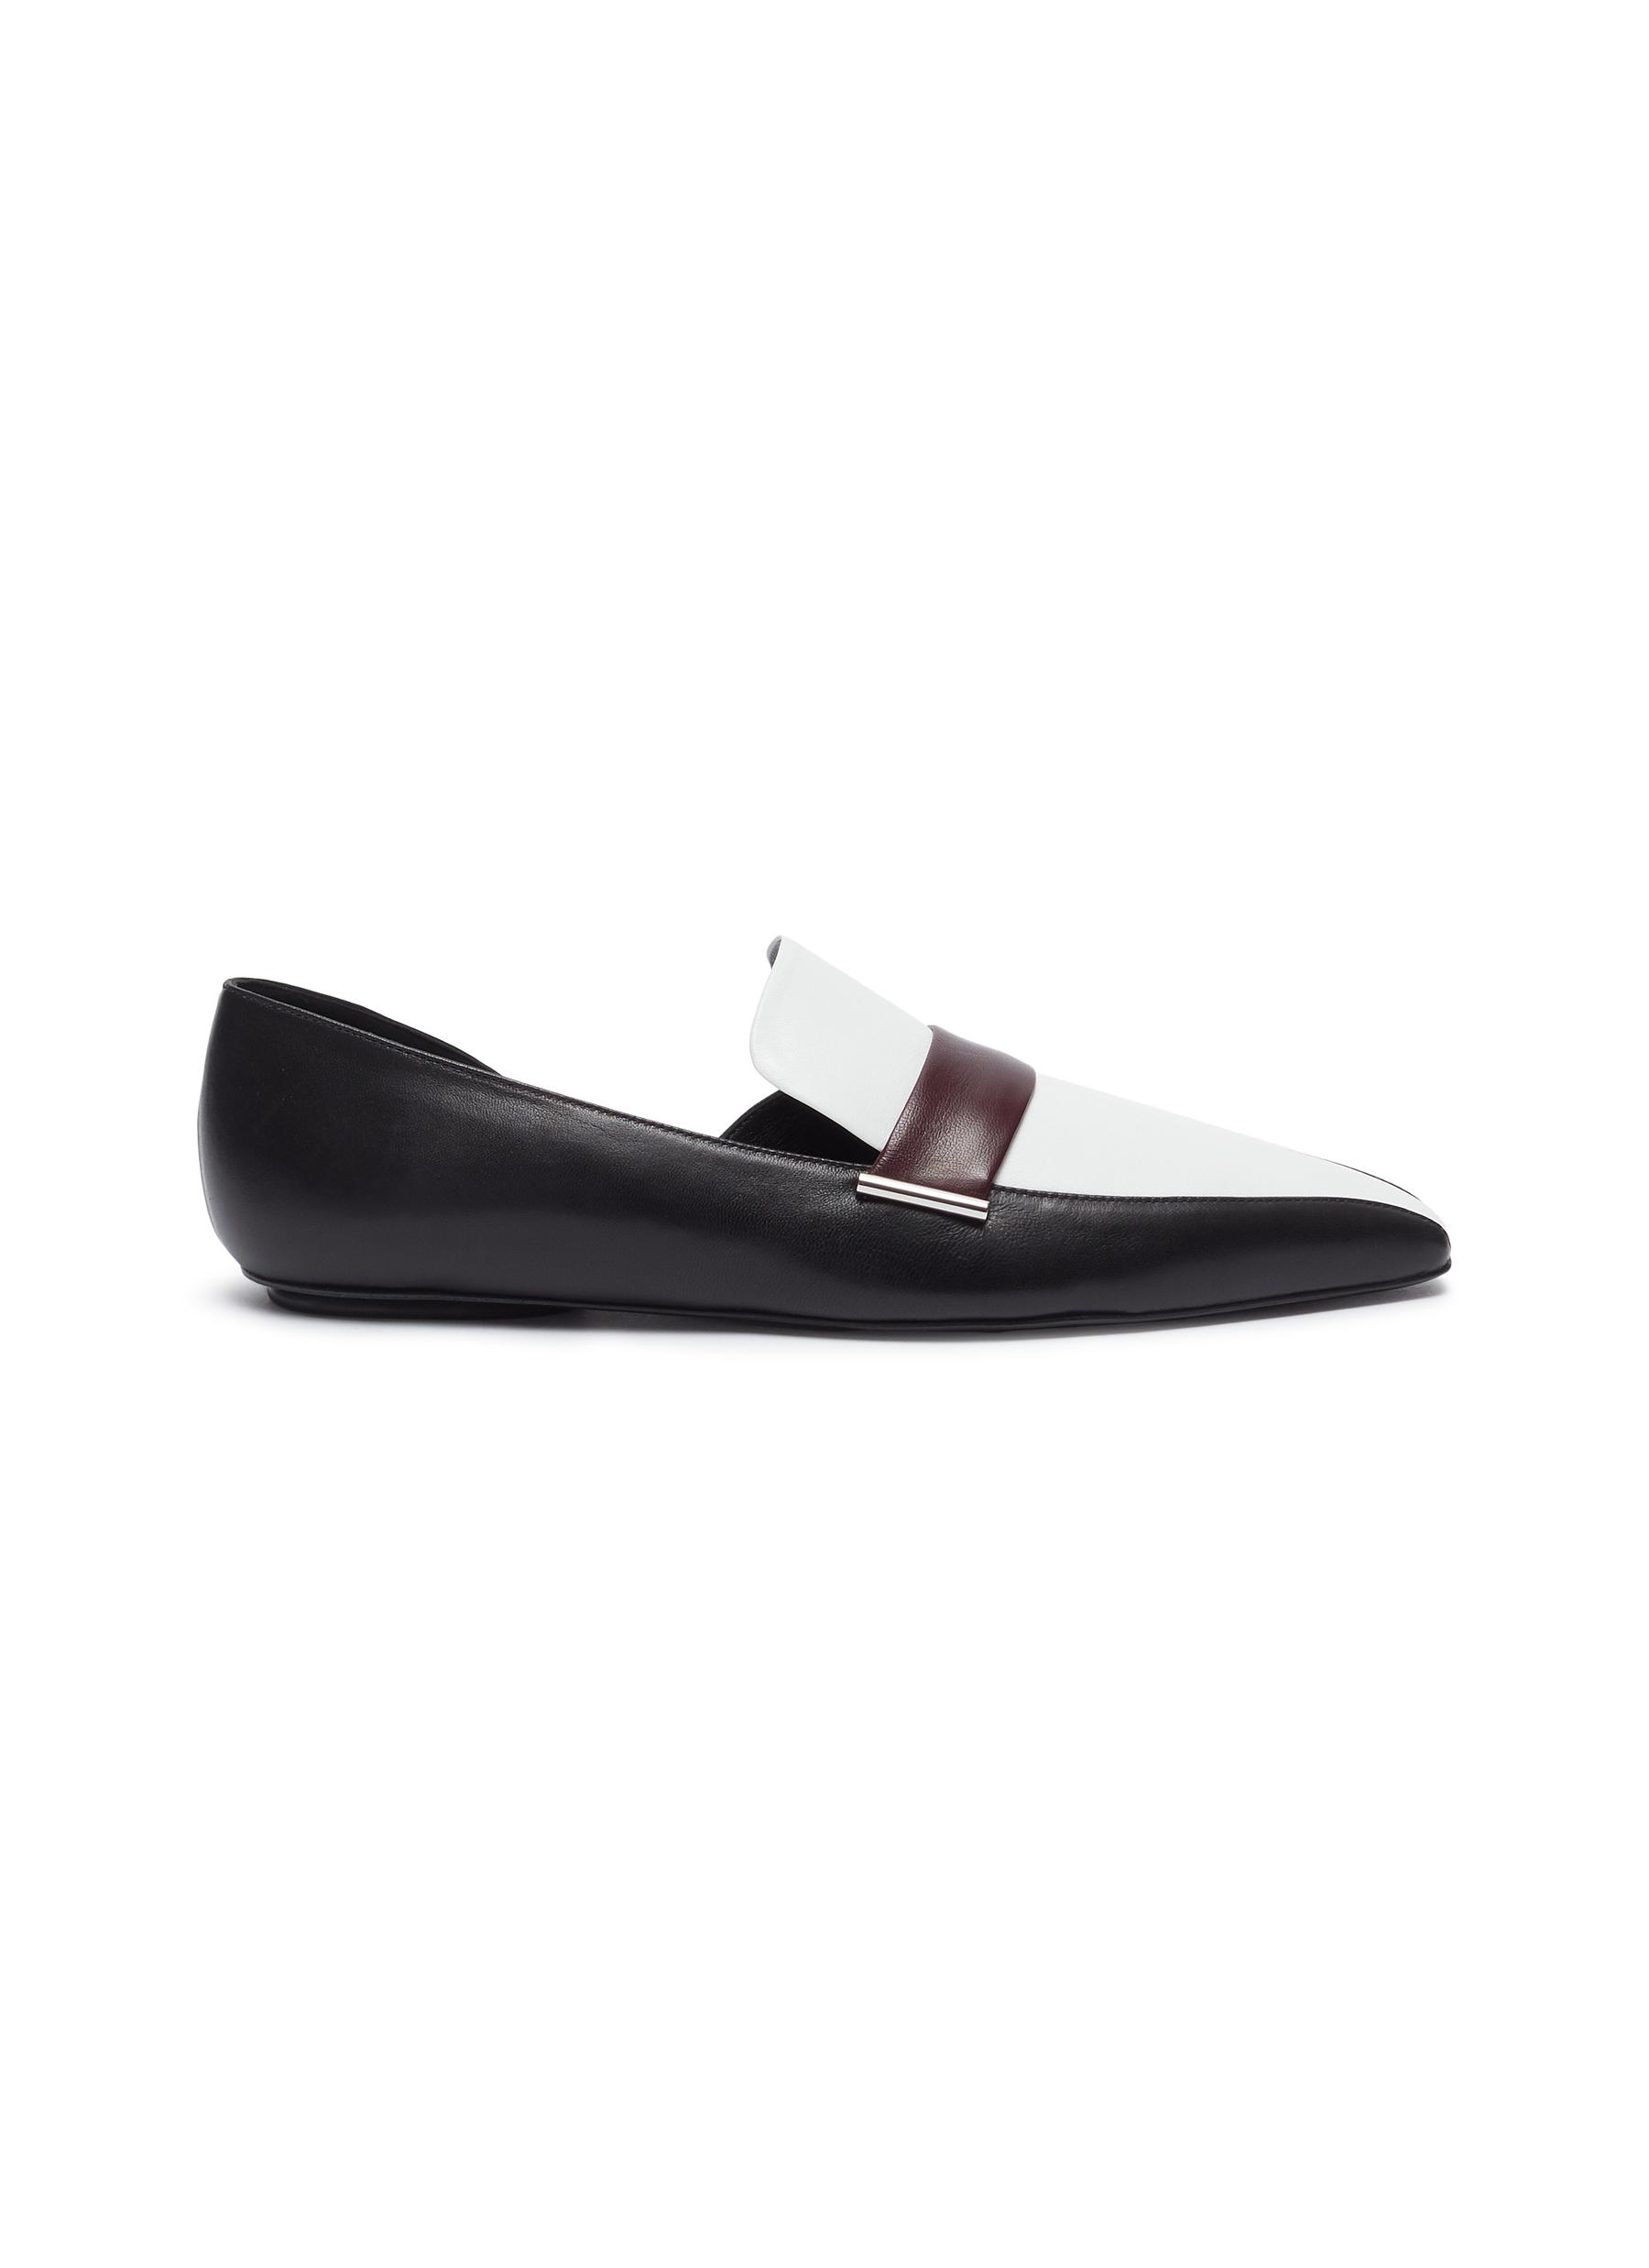 Colourblock leather dOrsay loafers by Rosetta Getty